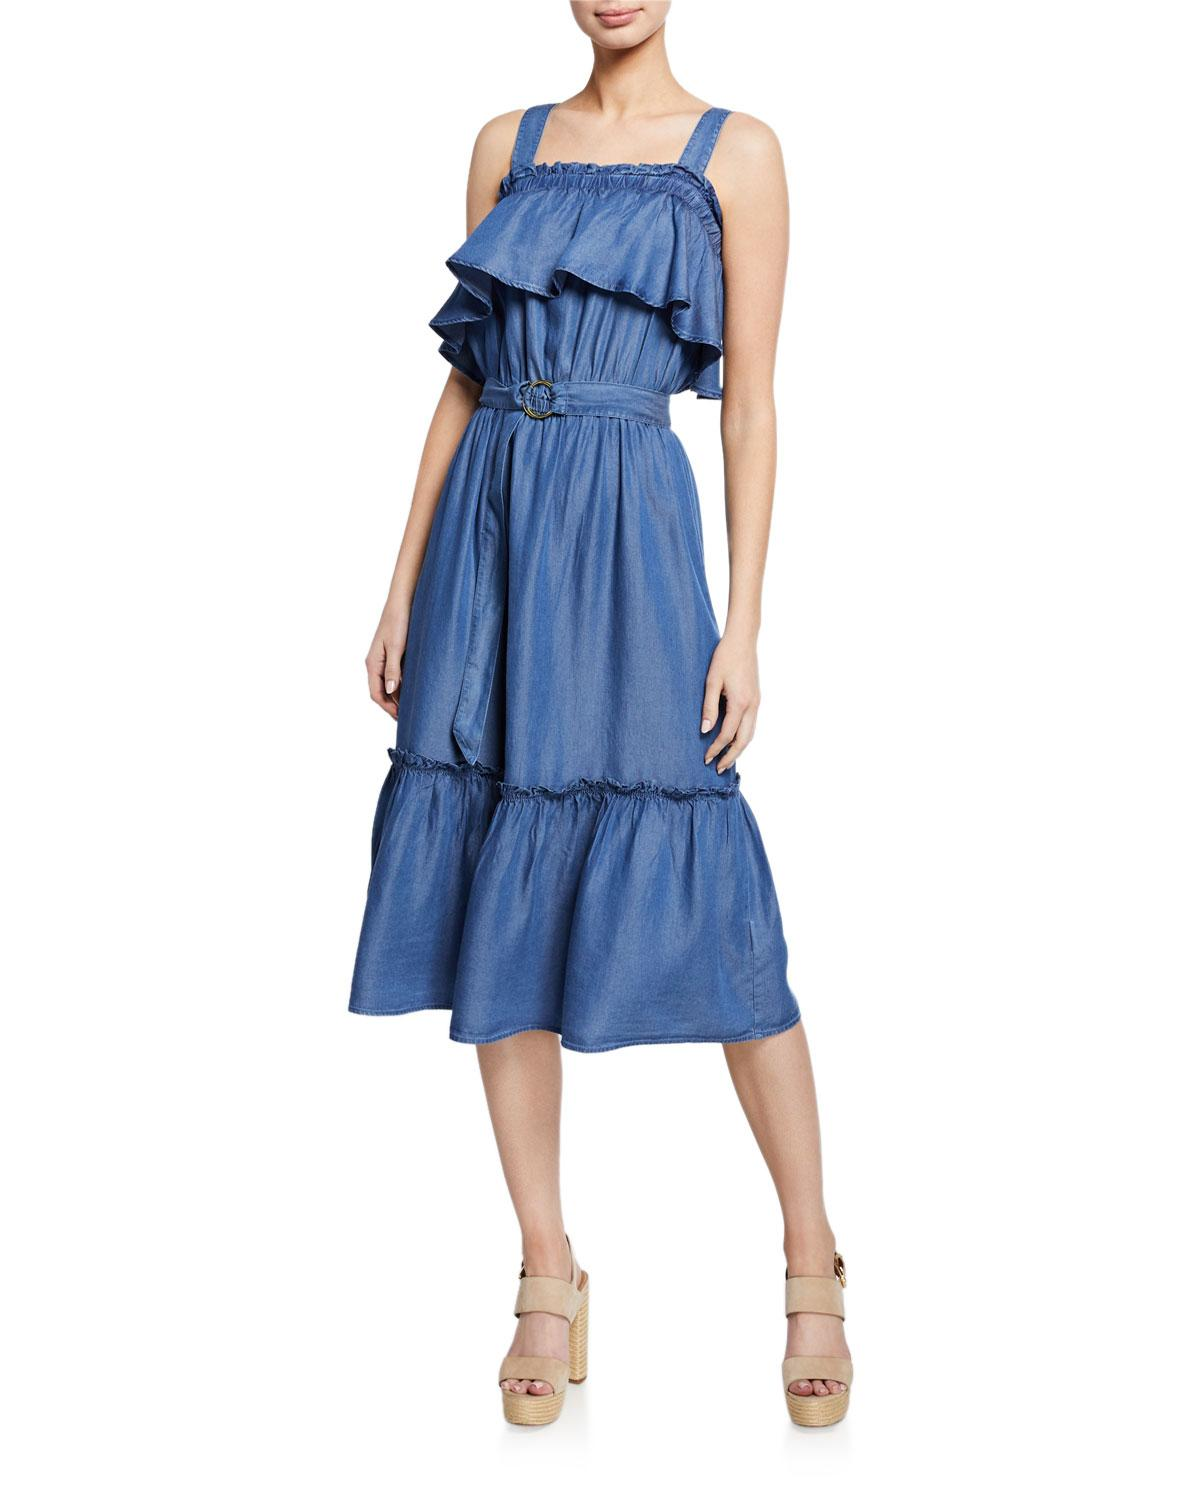 c58cede8f92 Lyst - MICHAEL Michael Kors Belted Midi Tank Ruffle Dress in Blue